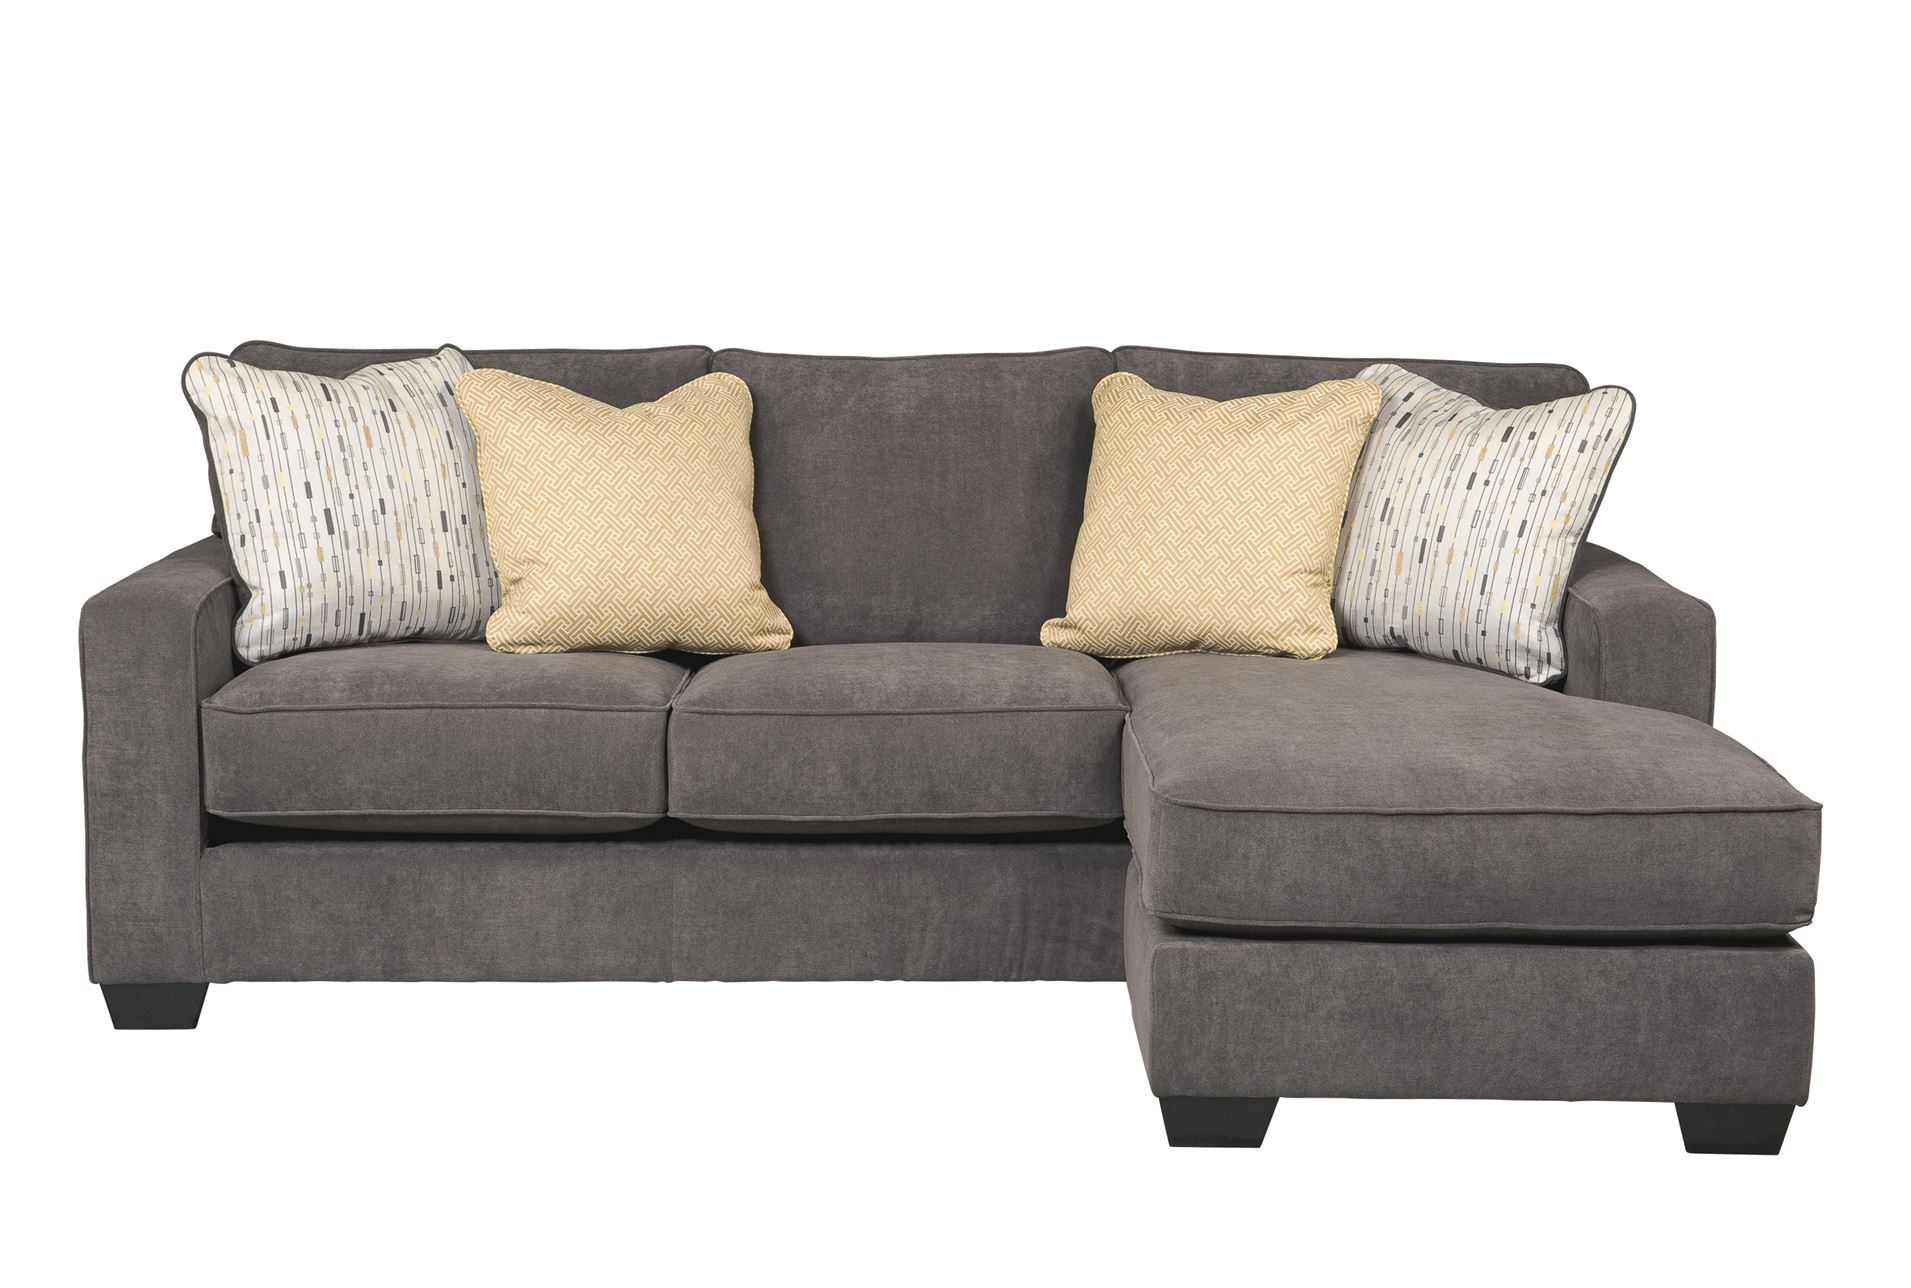 chaise couch amazing couch with chaise 91 for your sofa design ideas with couch with JRMKIHX